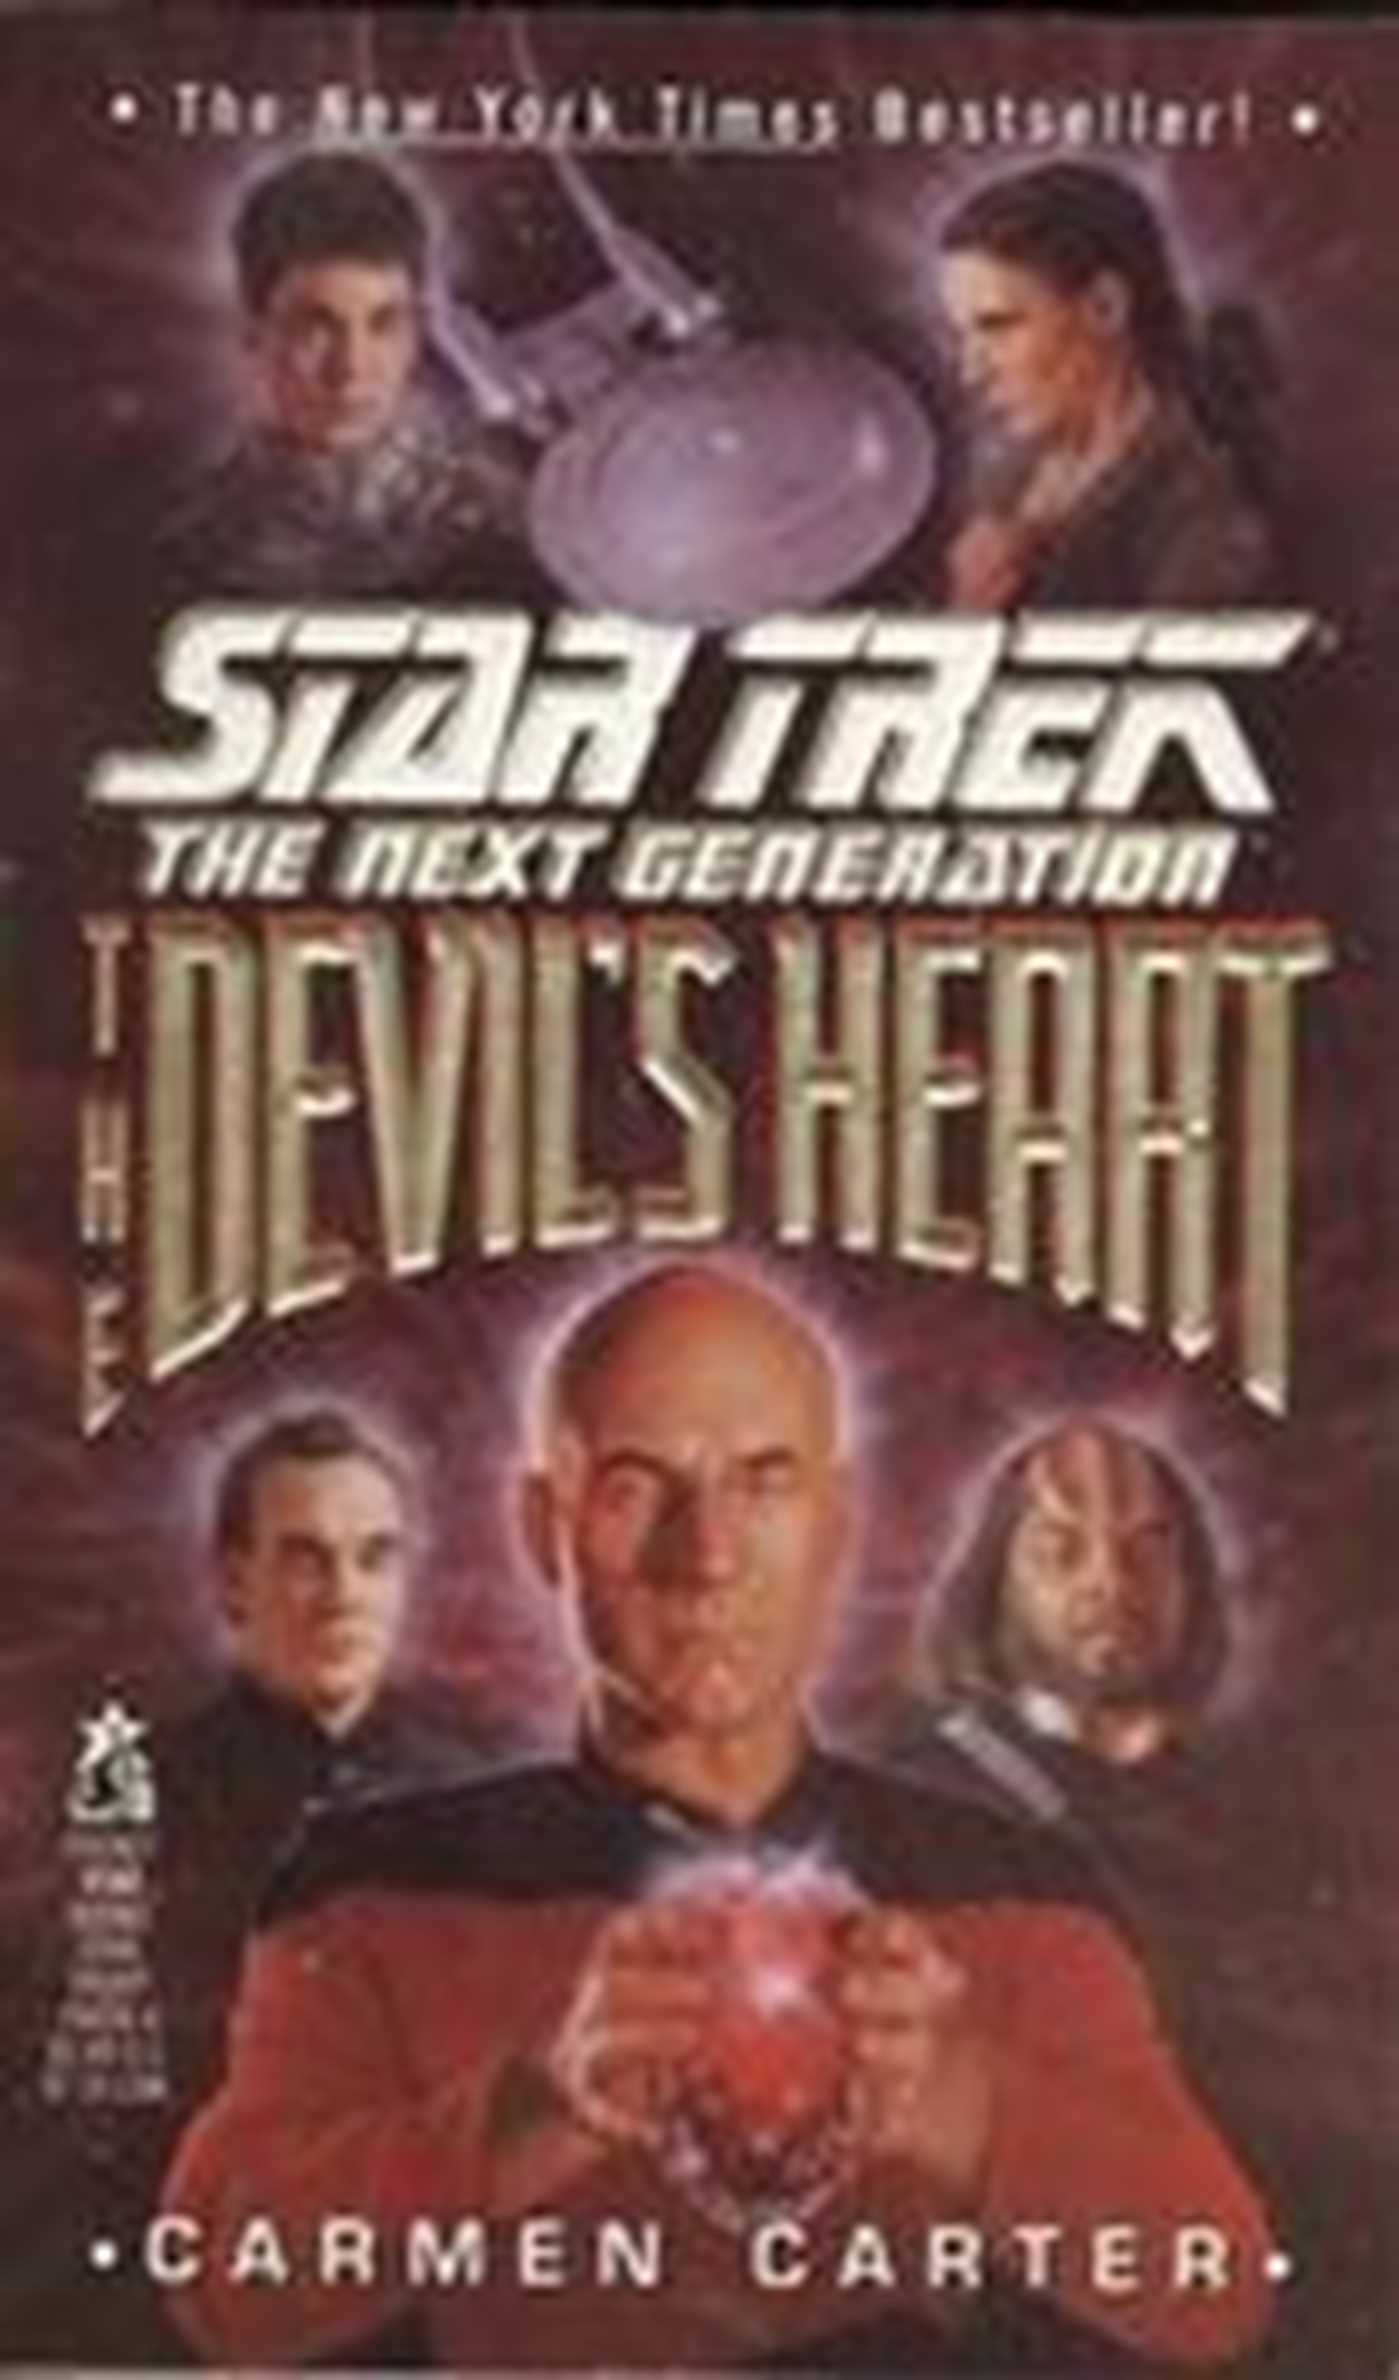 The devils heart 9780743420631 hr